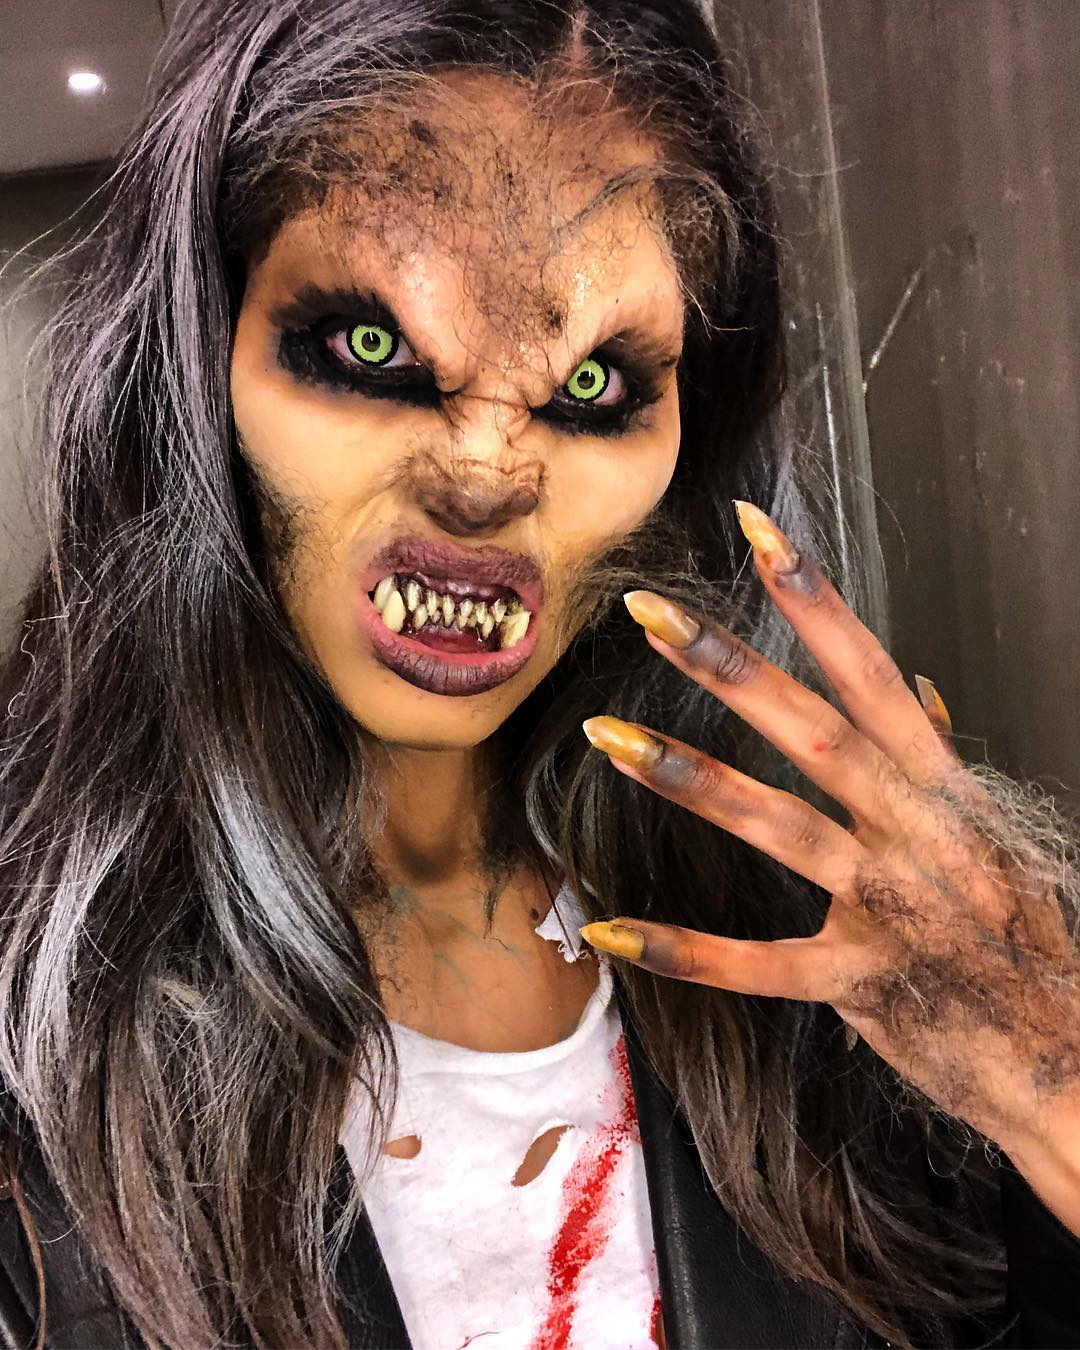 Sara Sampaio as a werewolf // via instagram.com/sarasampaio